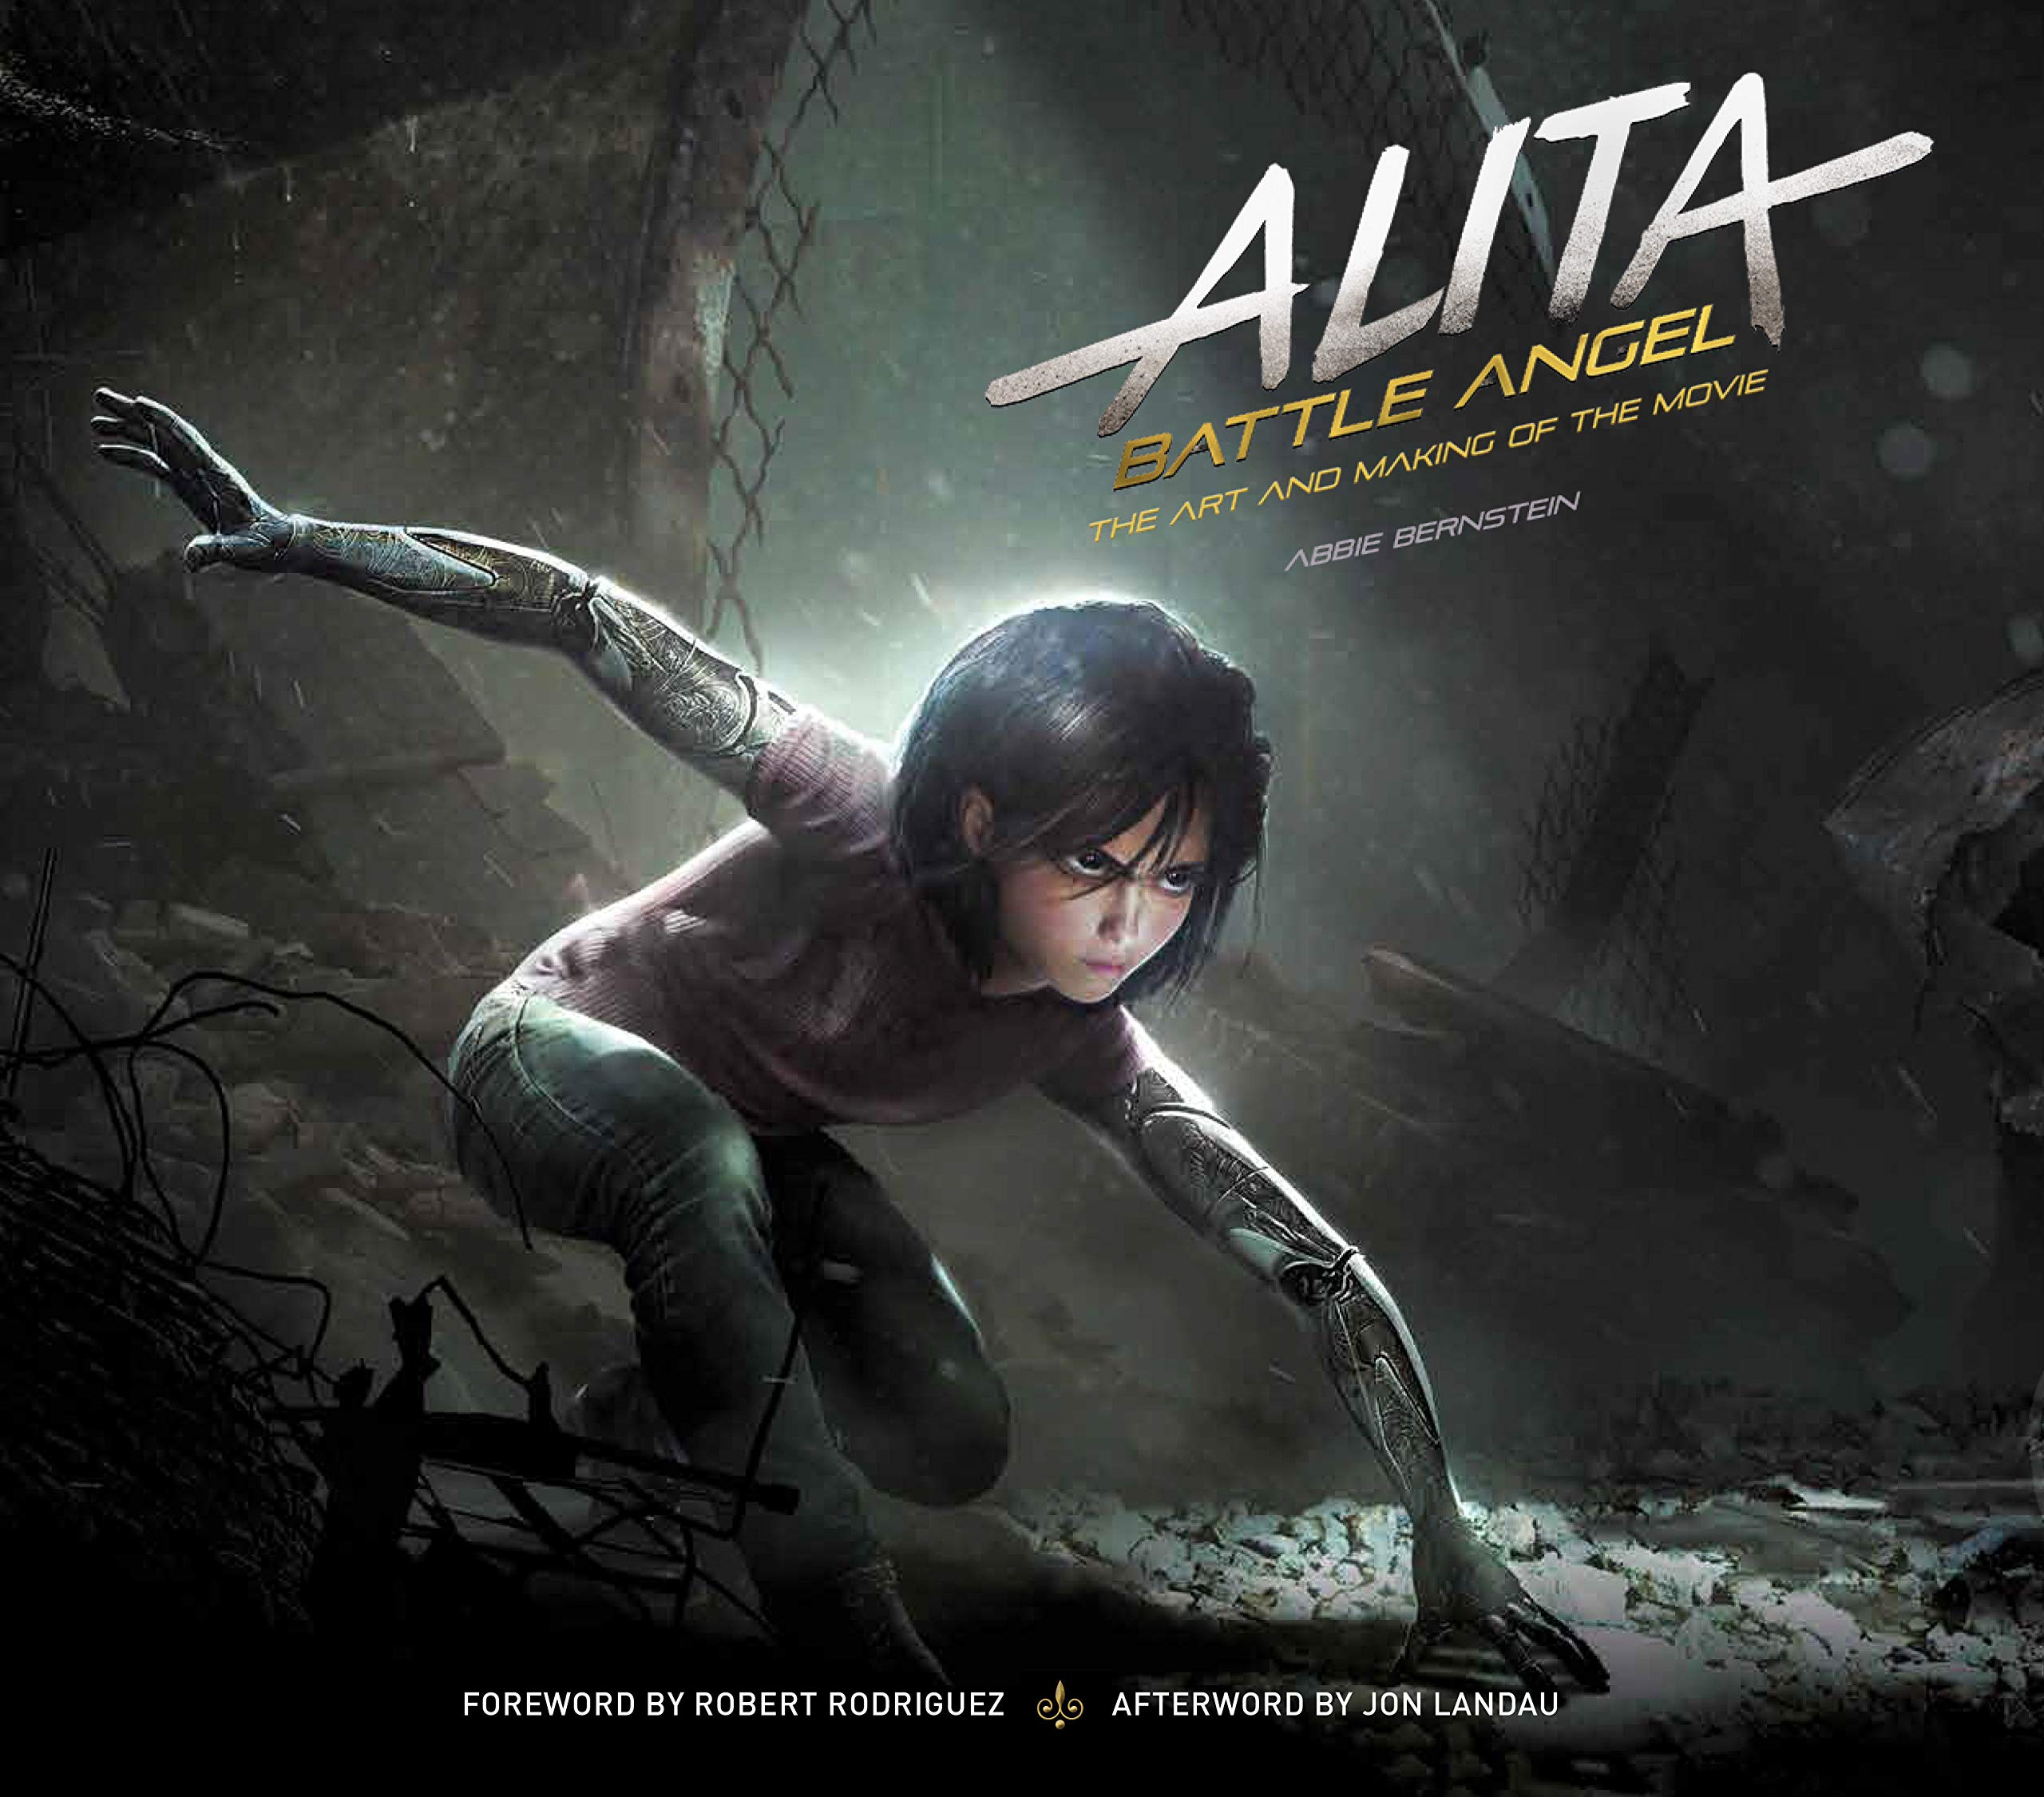 Alita Battle Angel The Art And Making Of The Movie Abbie